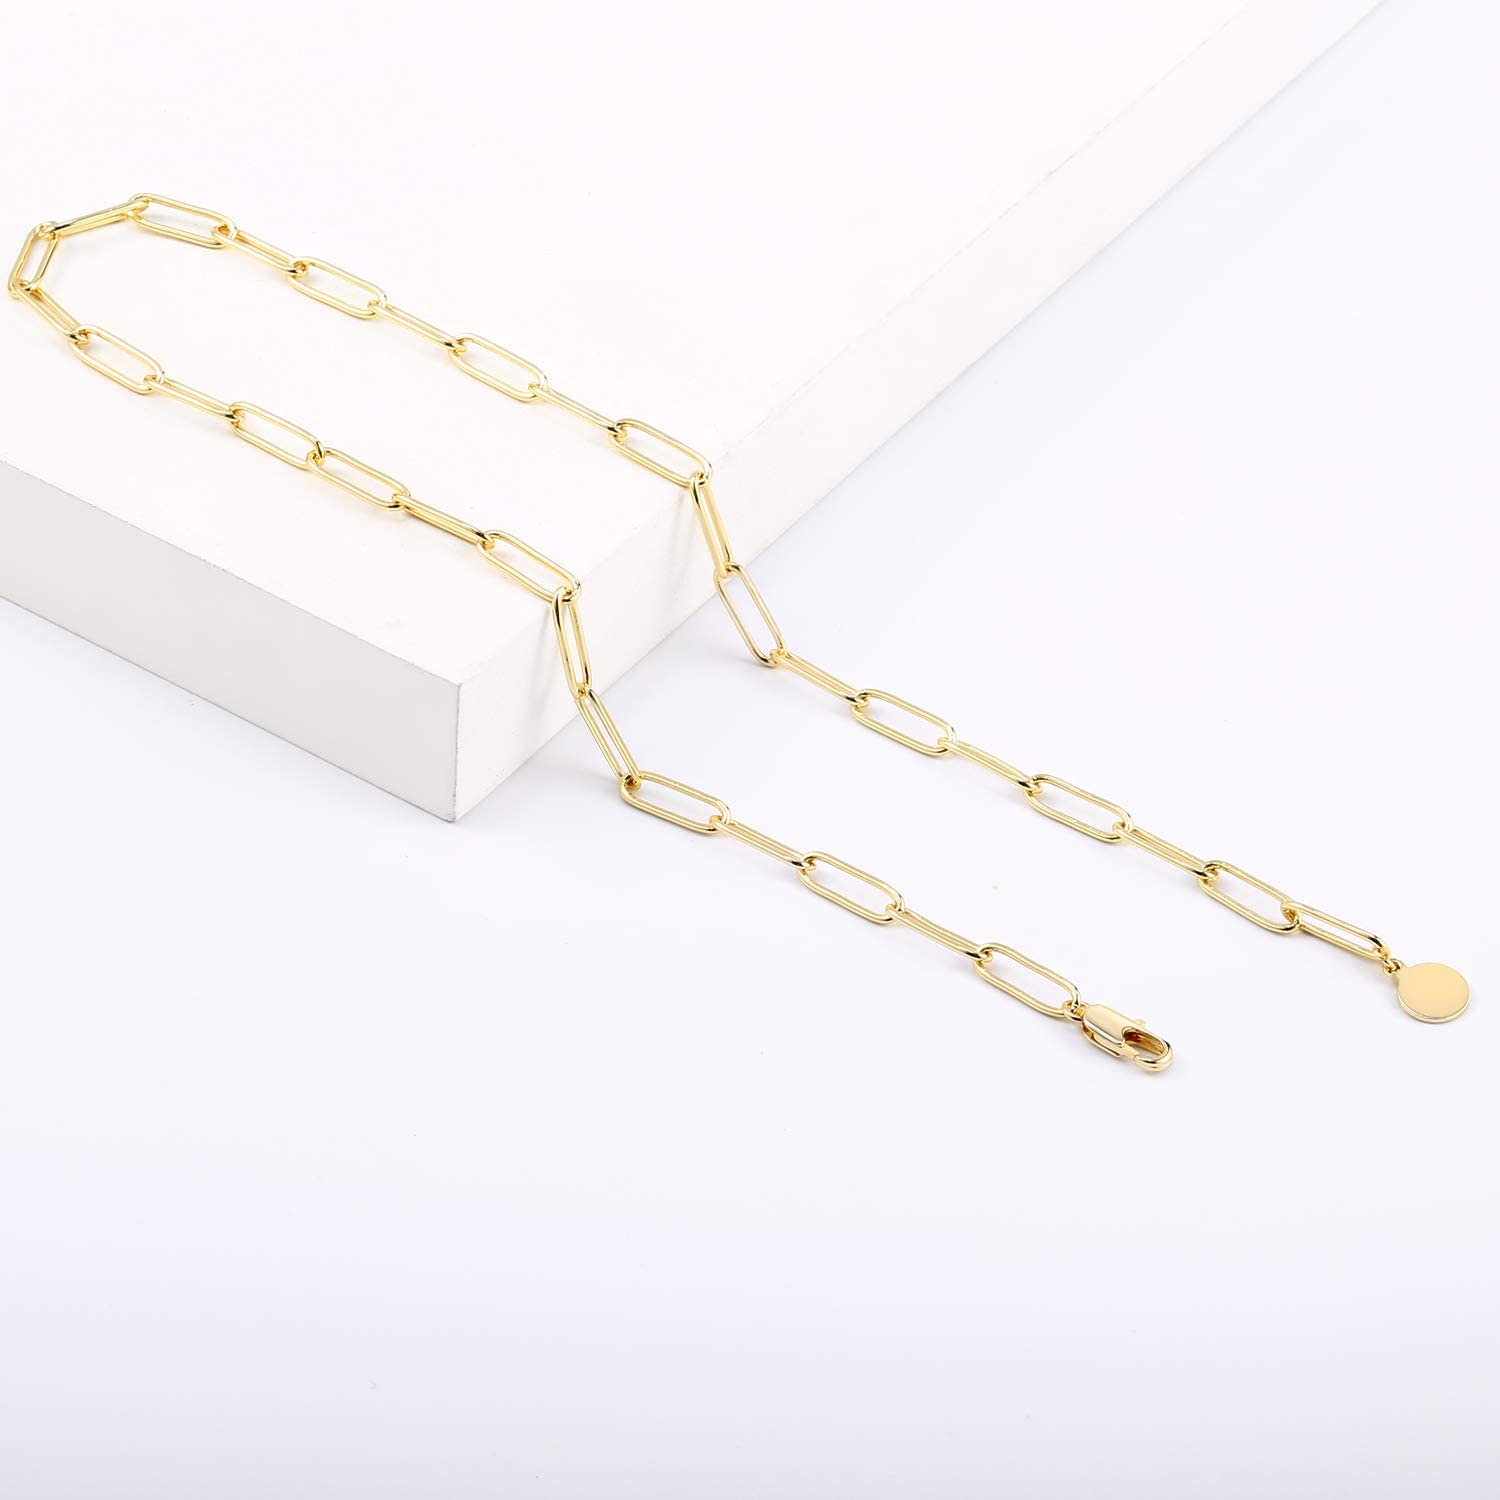 Paperclip Necklace, 14K Gold Plated Oval Dainty Choker Chain Link Necklace for Women Girls: Jewelry